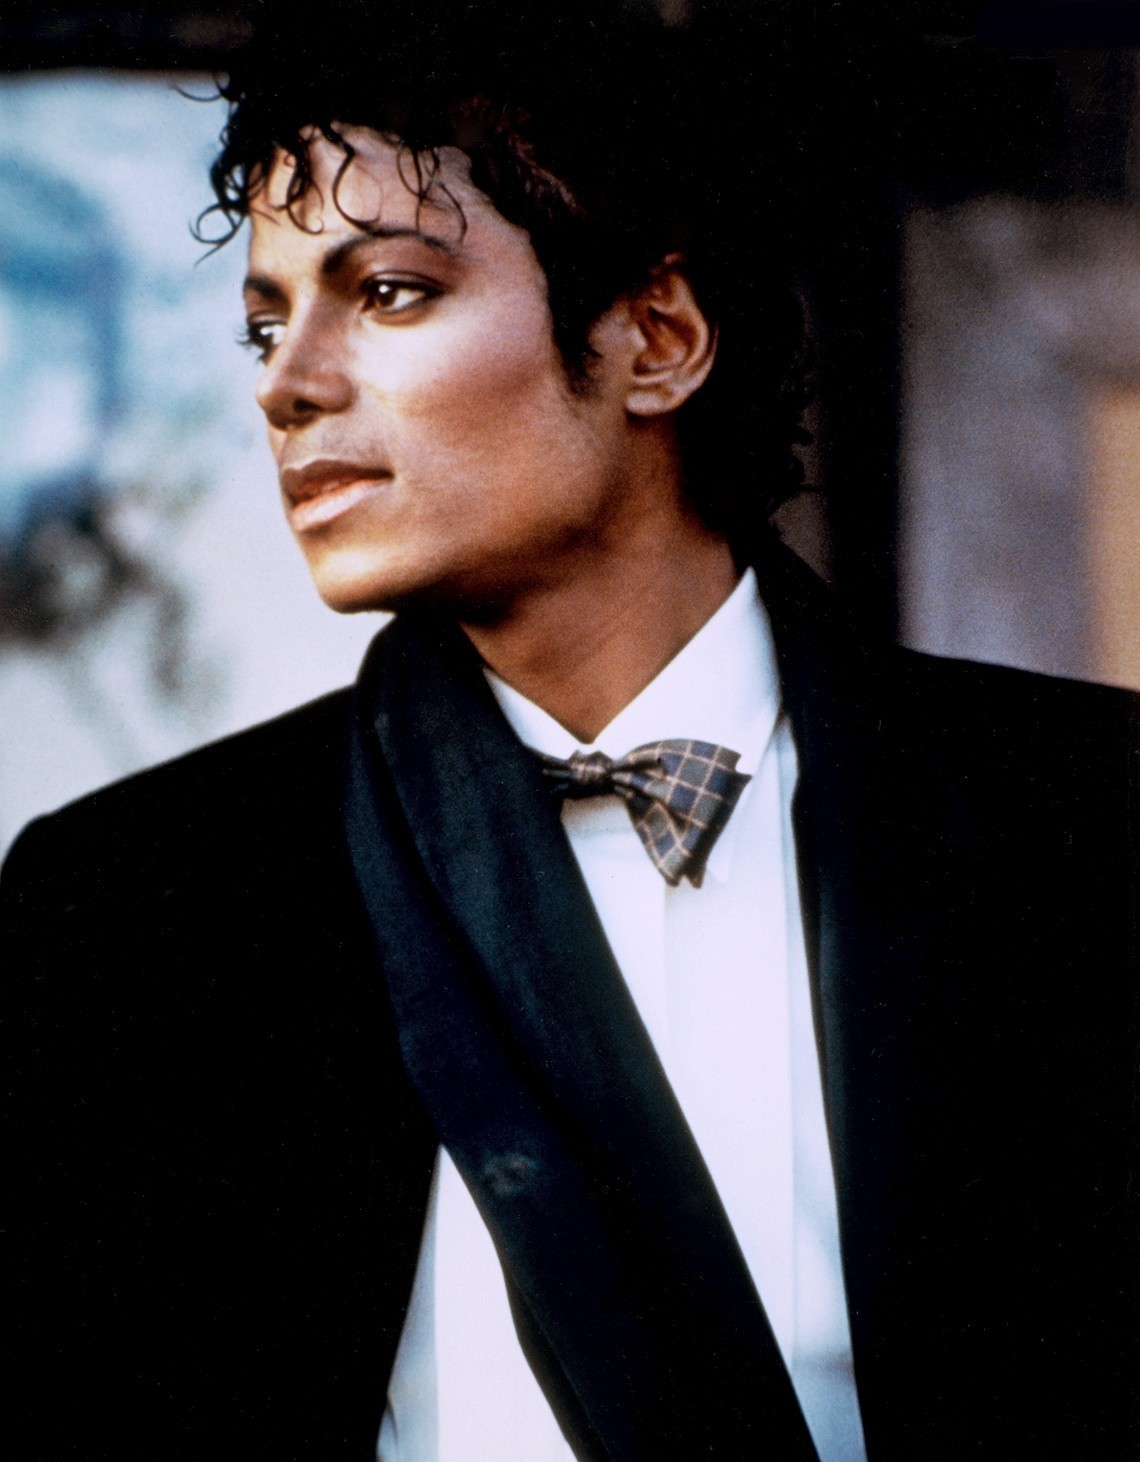 which hairstyle of michael jackson you think that match him